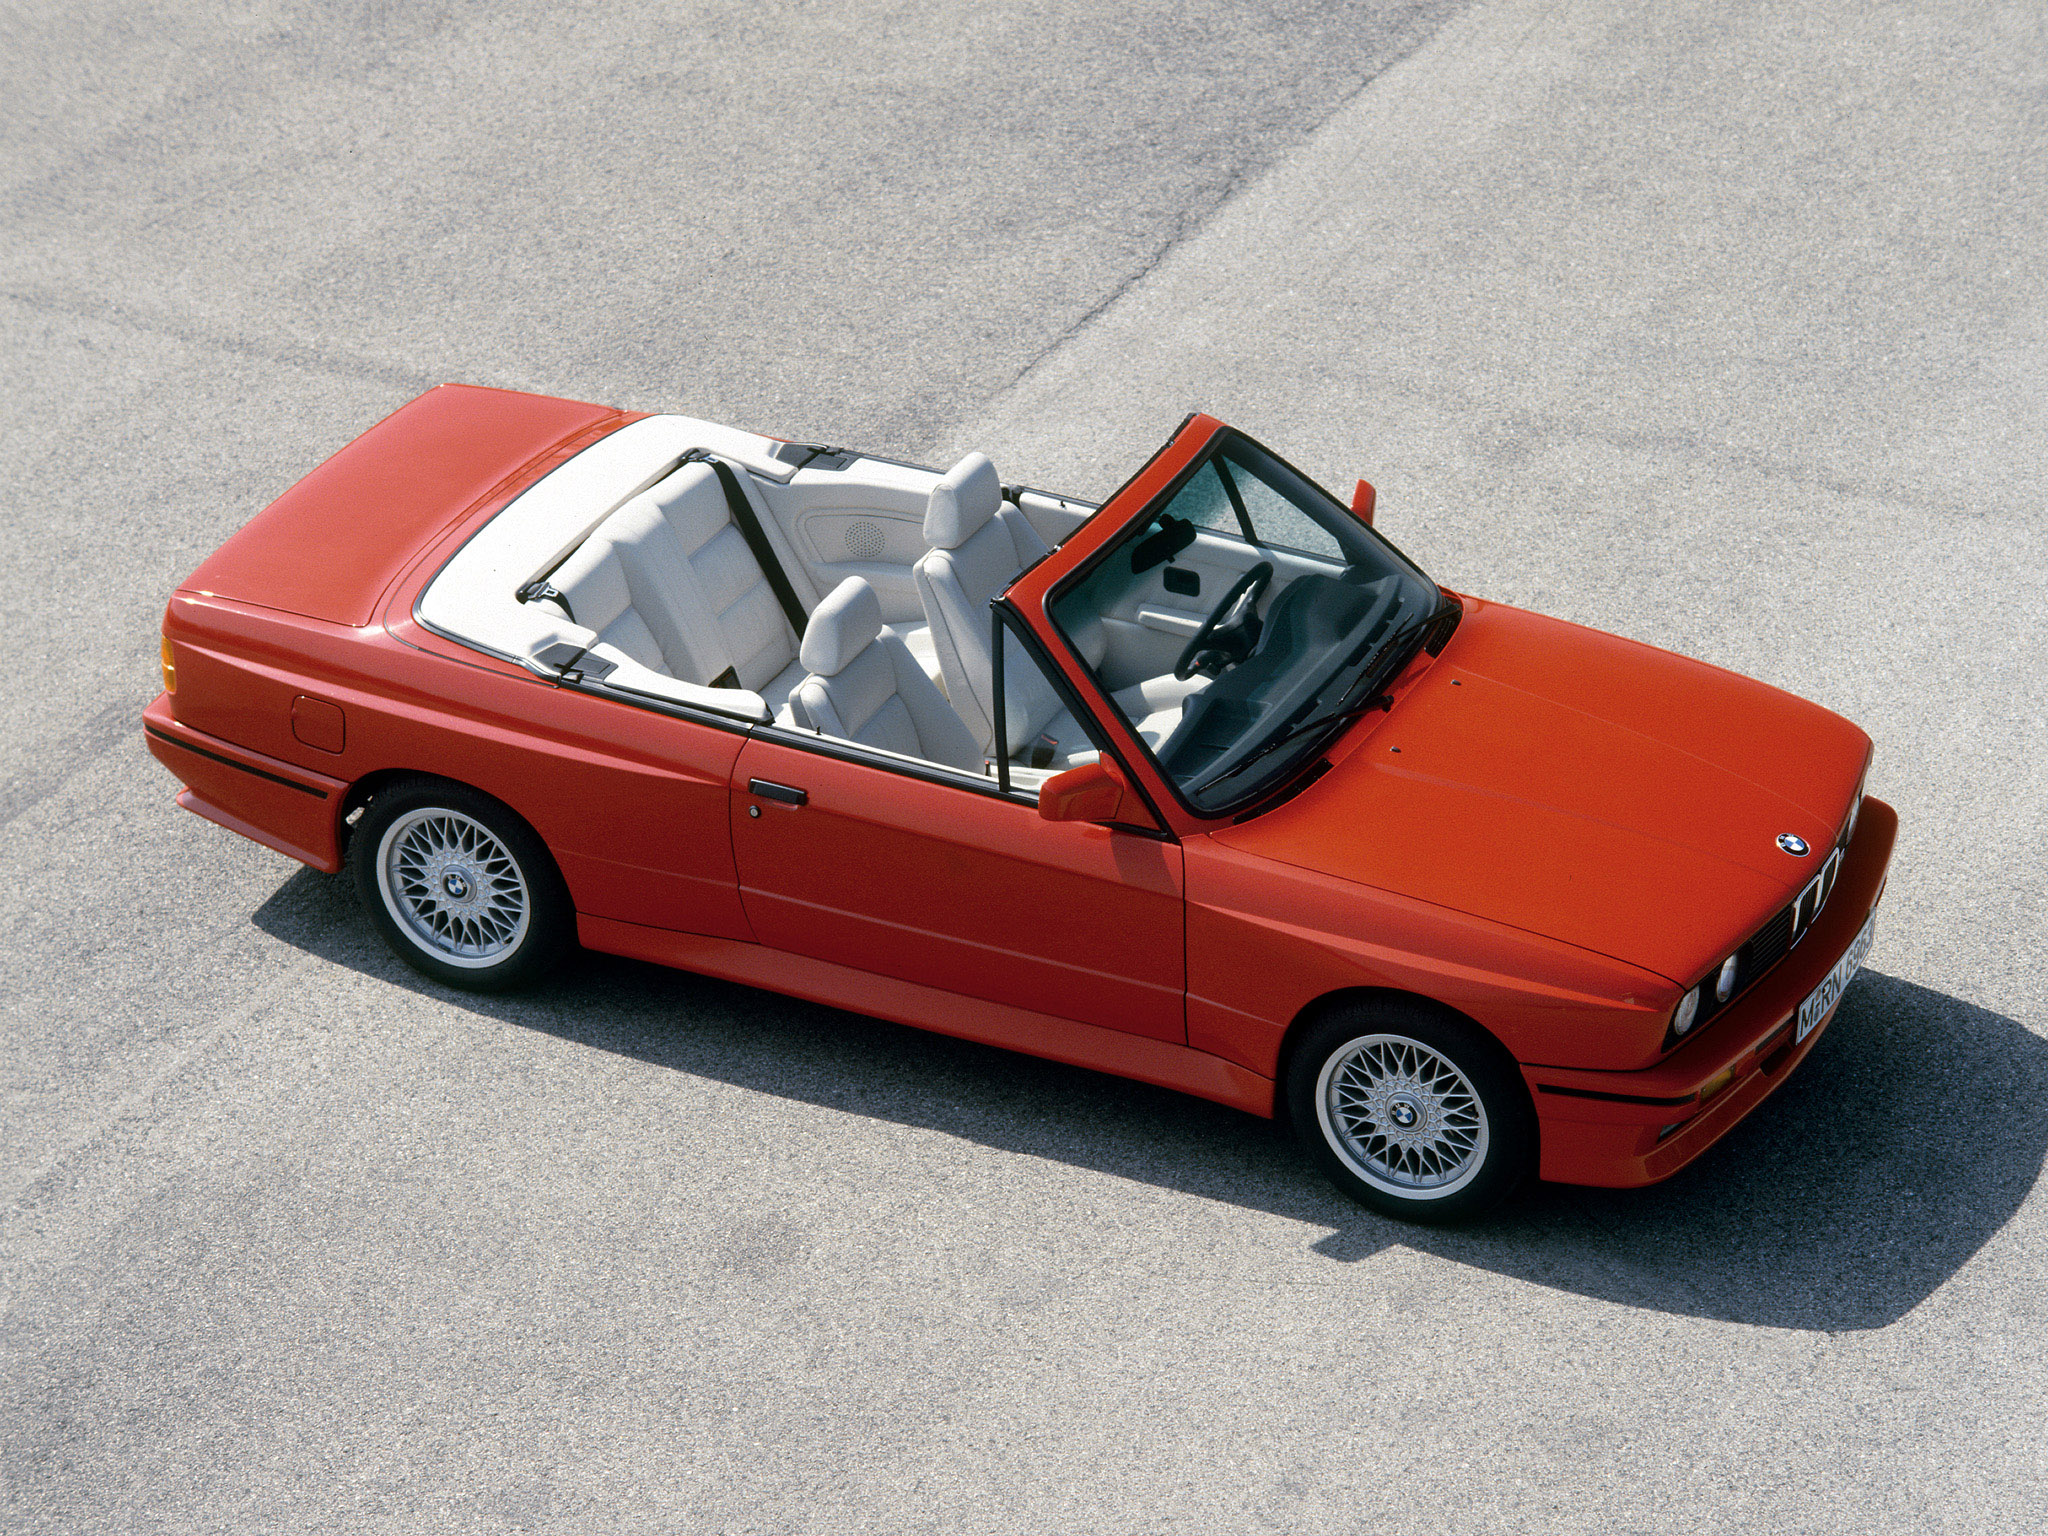 1991 Bmw M3 cabrio (e30) - pictures, information and specs ...